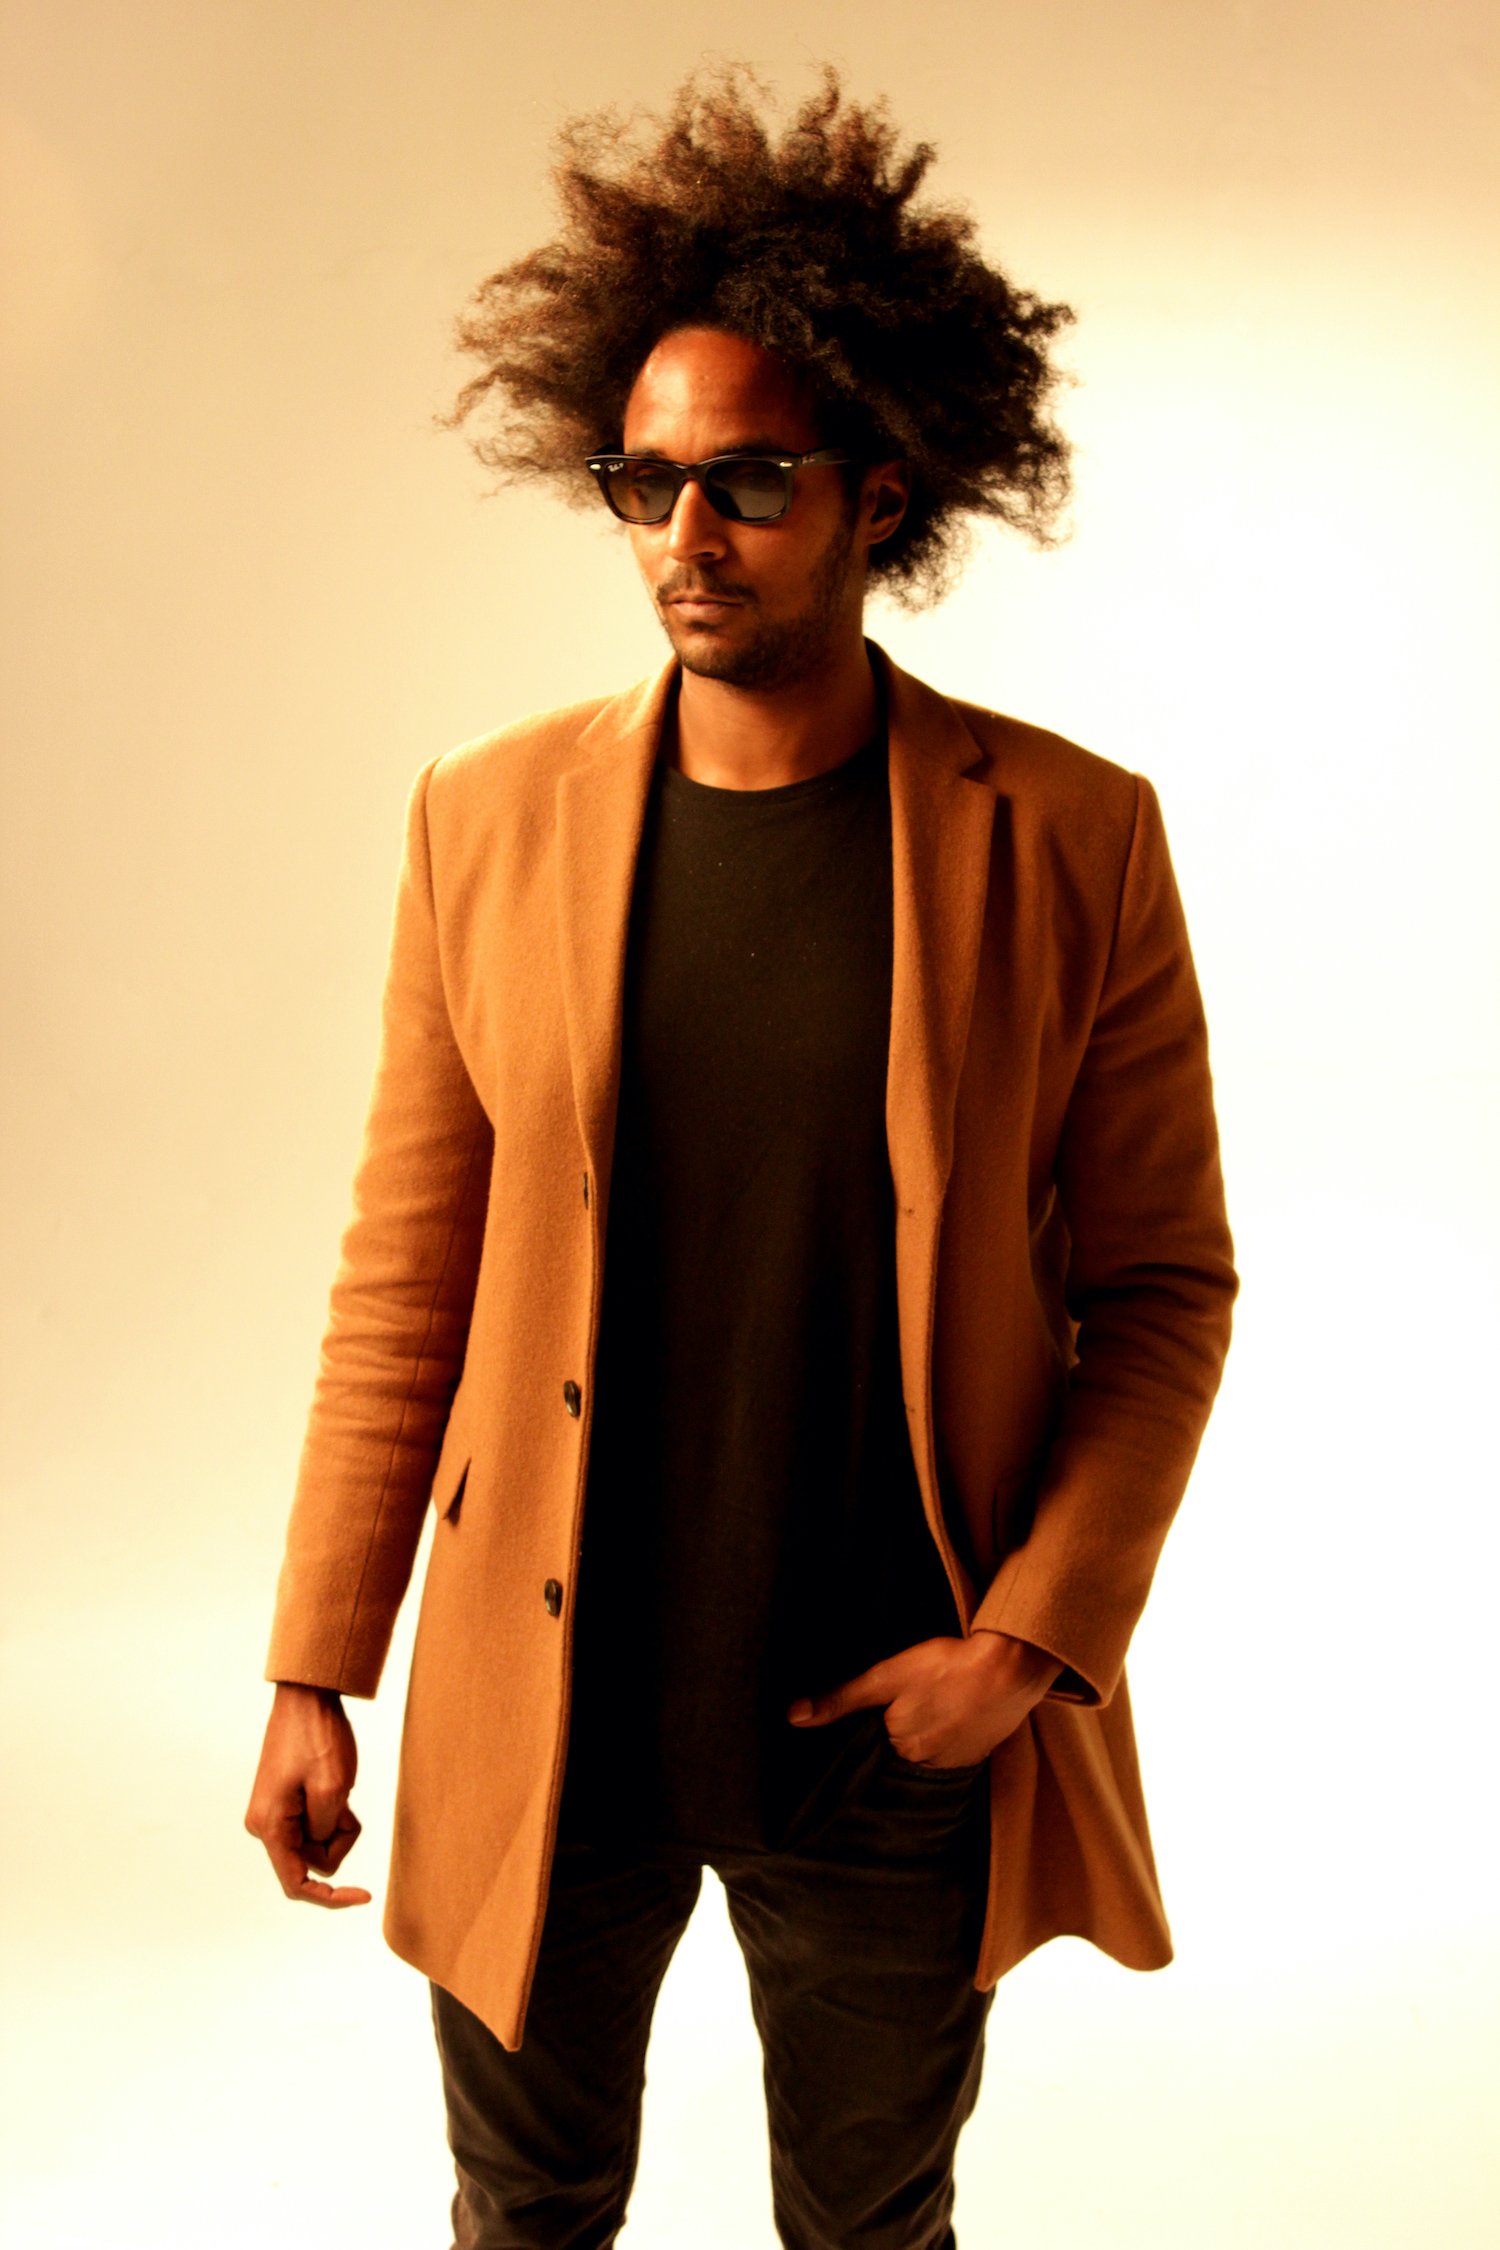 Professional Photography Black Man In Black Shirt Jeans Sunglasses And Orange Blazer Standing On White Studio Backdrop